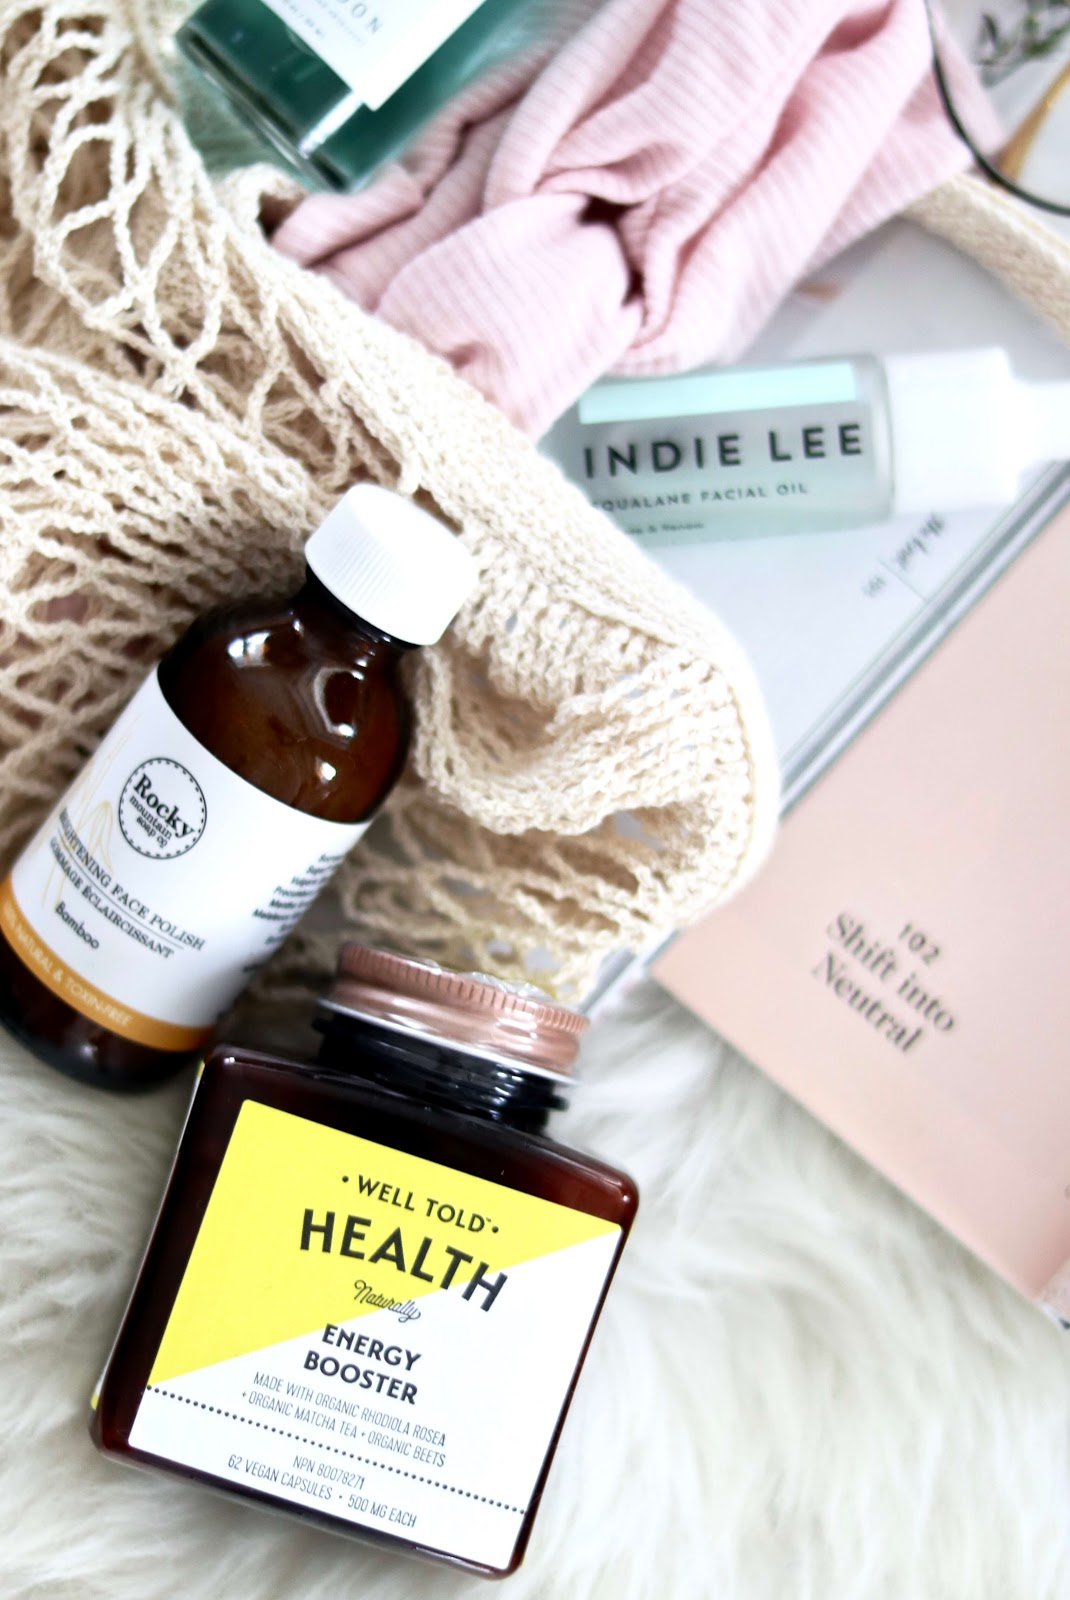 Well Told Health at The Truth Beauty Company best in clean and natural skincare